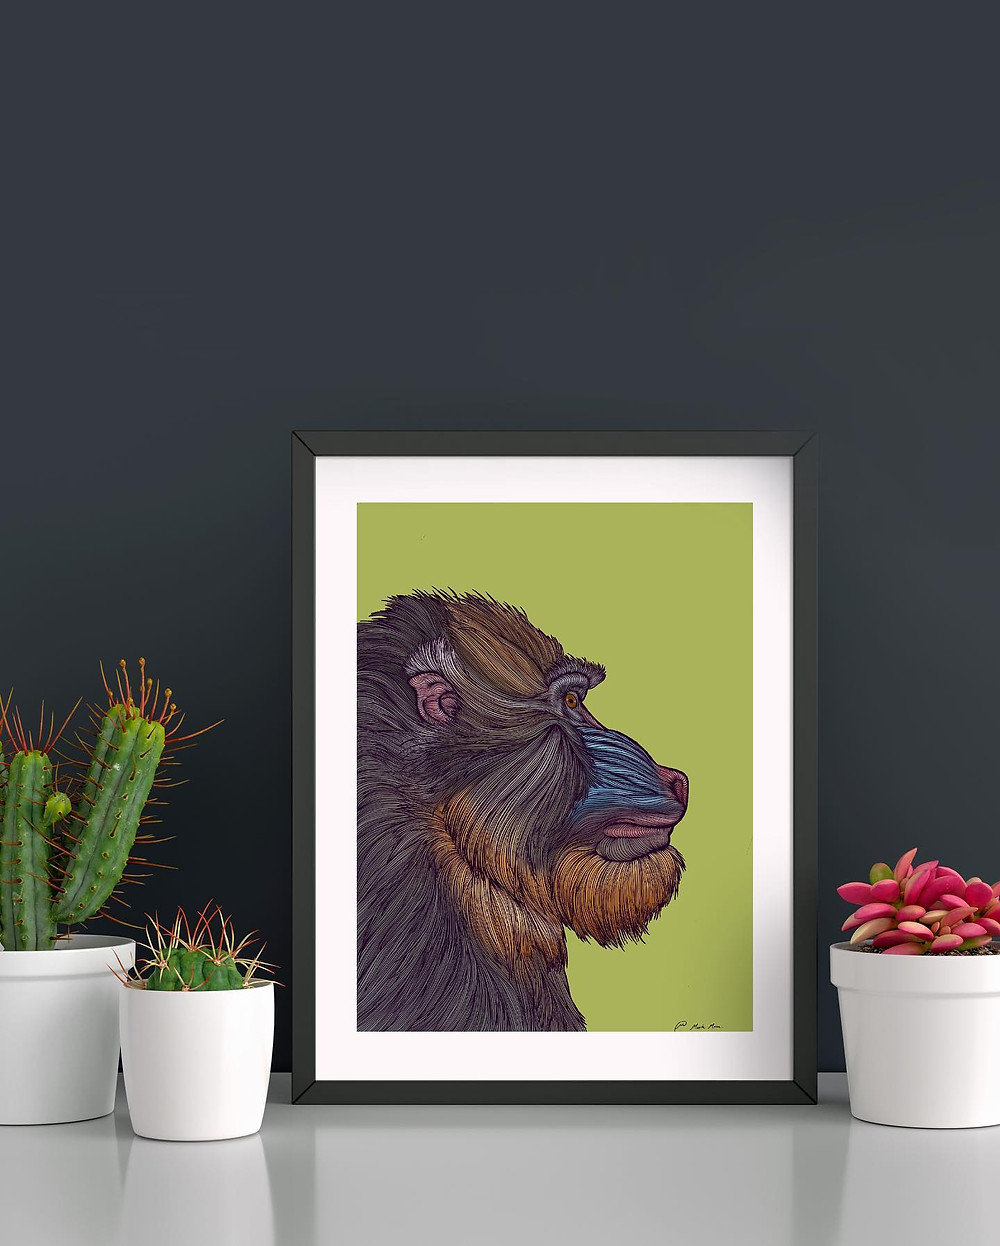 Countour line drawing of a Mandrill on a lime green background framed in a dark frame with a white border.  The frame is propped against a dard grey wall surrounded by white pots with succulents